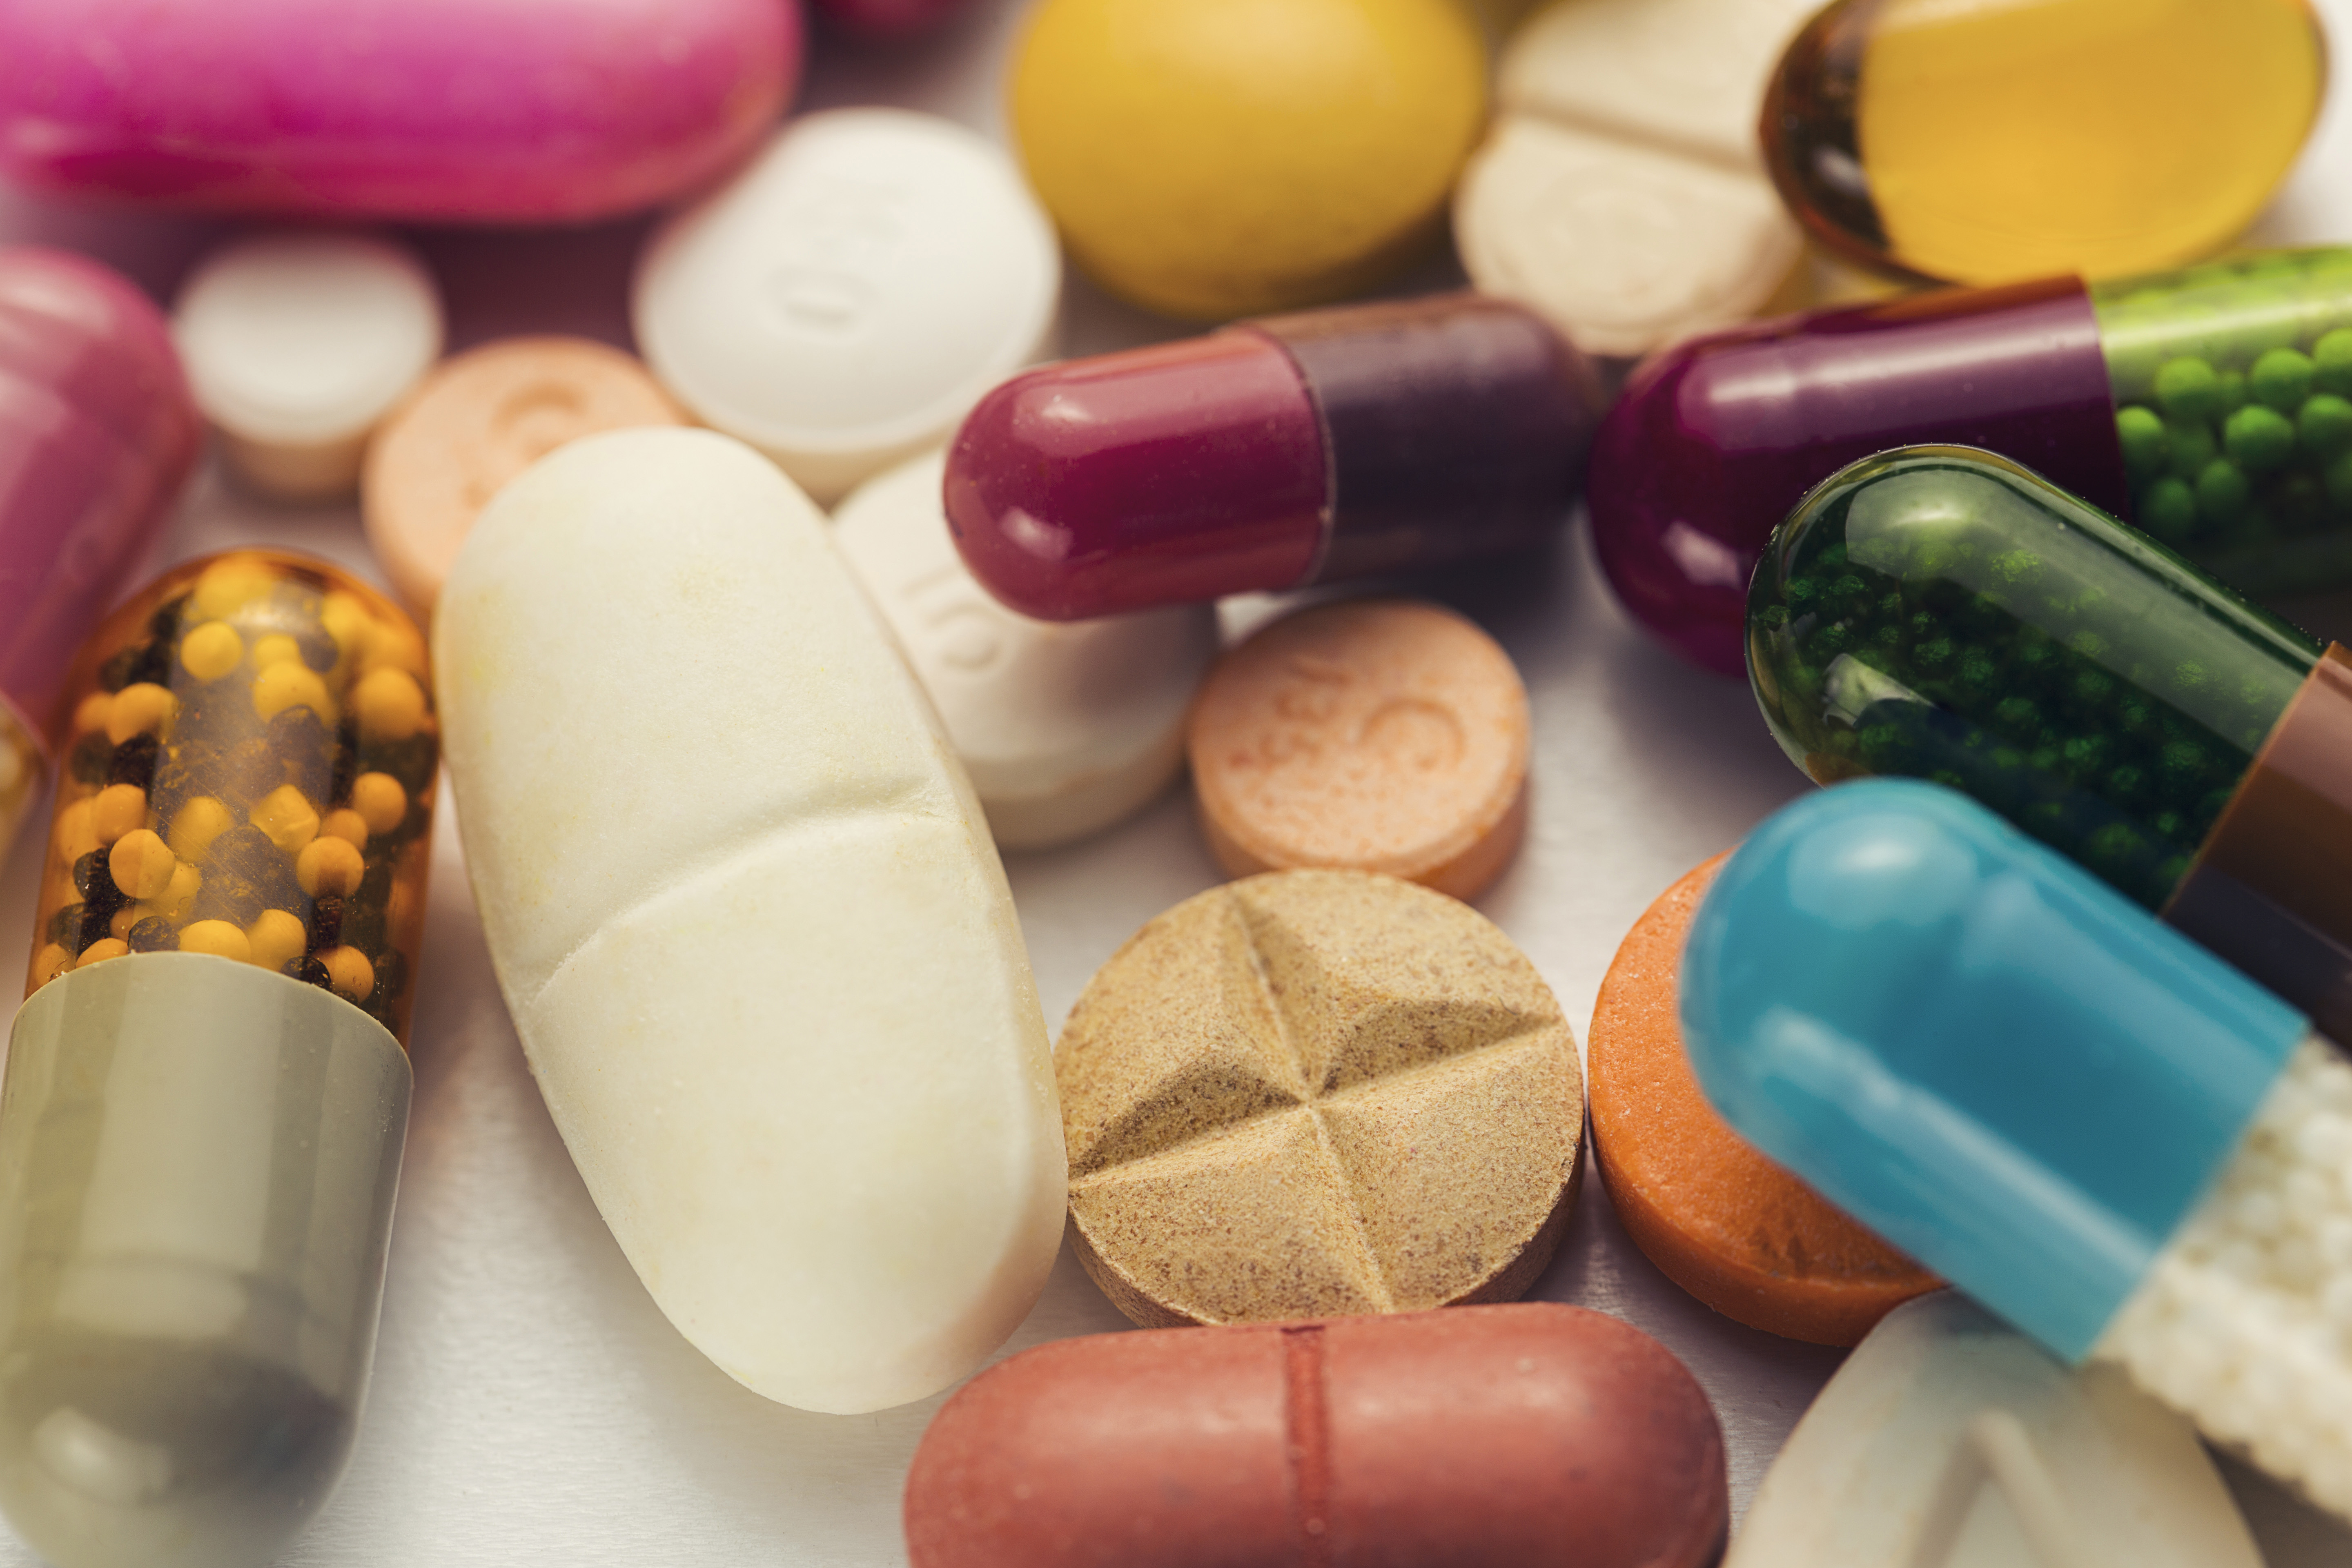 The current system where an overwhelmed FDA tries to fit in oversight of dietary supplements has to change, in order to protect consumers and put the onus on the manufacturer, says C. Michael White, professor of pharmacy practice. (Getty Images)